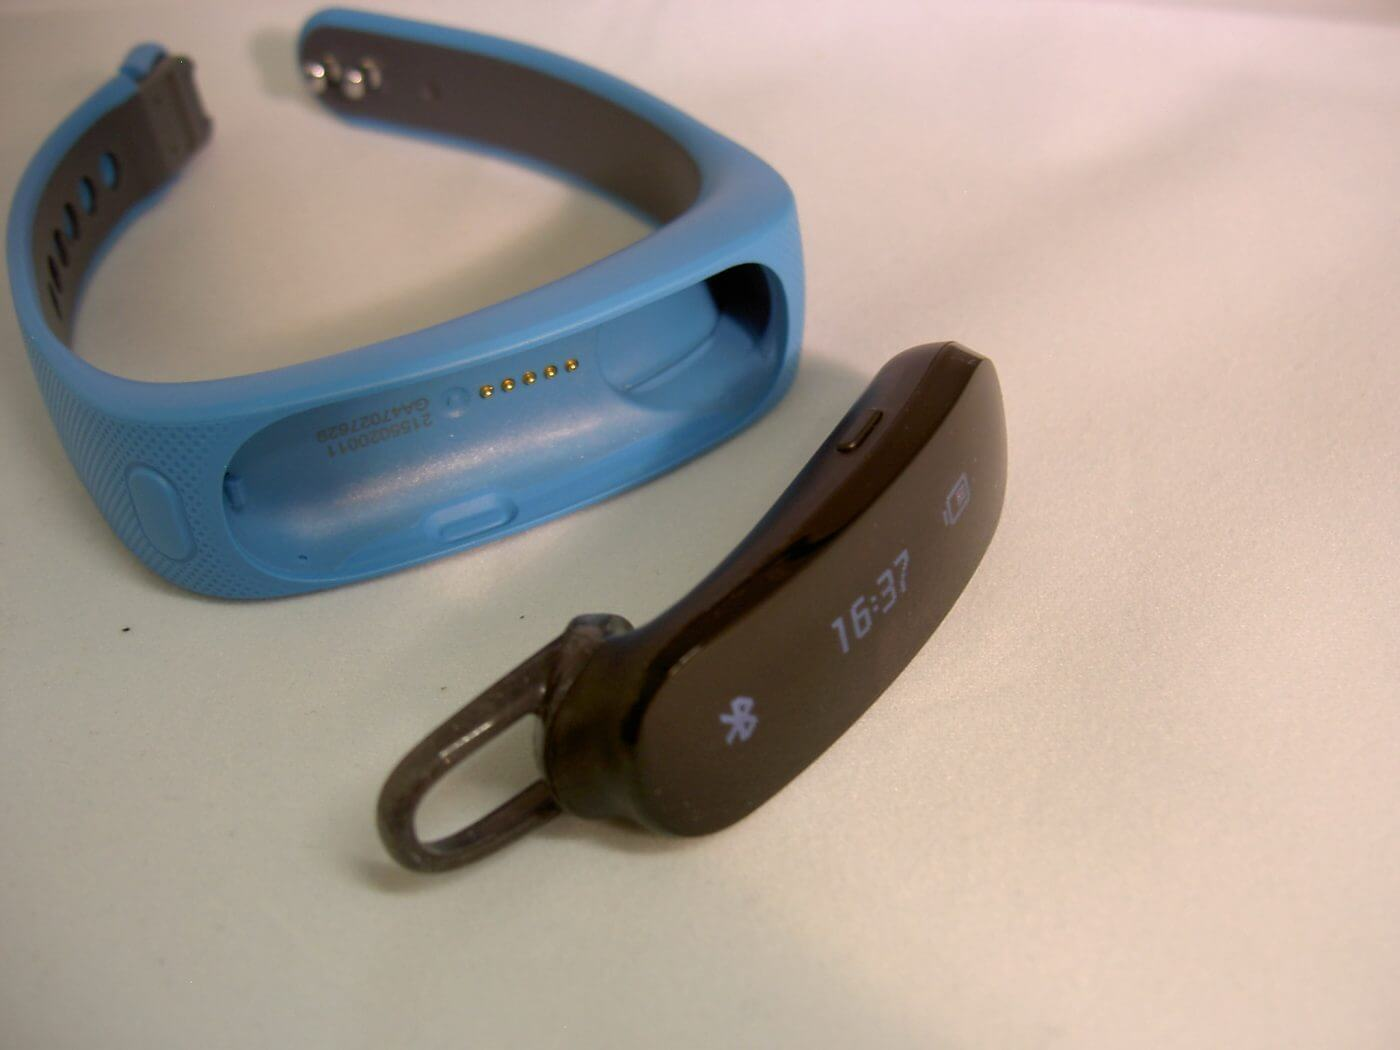 Huawei Talkband B1 Earpiece